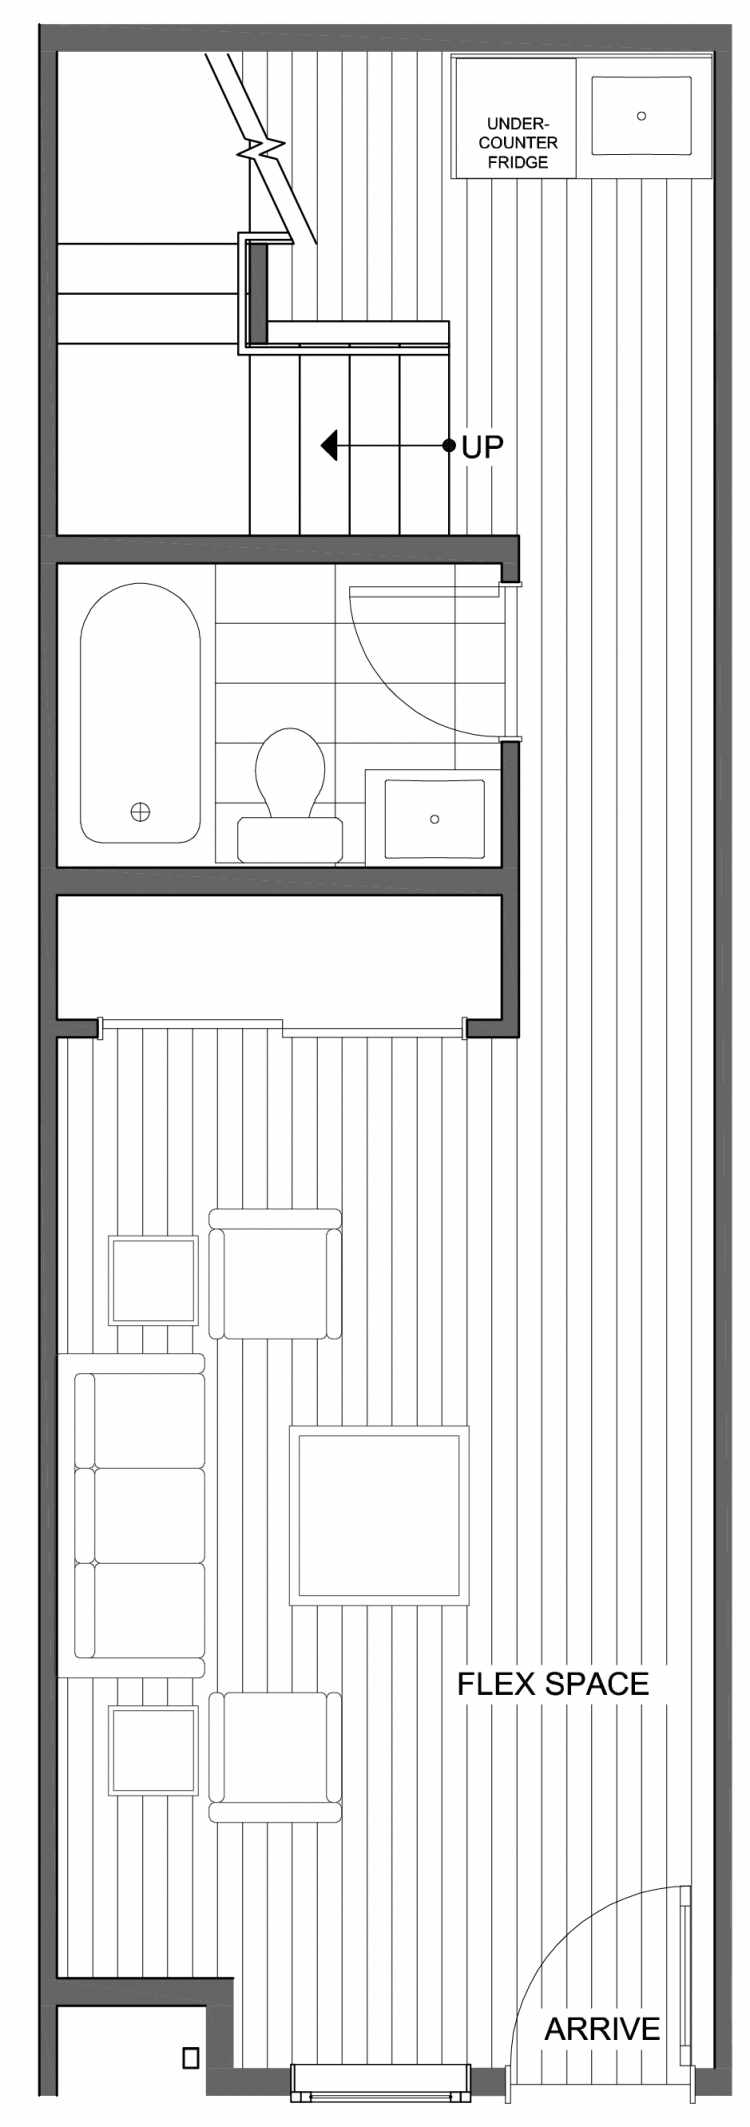 First Floor Plan of 806E N 46th St, One of the Nino 15 East Townhomes by Isola Homes